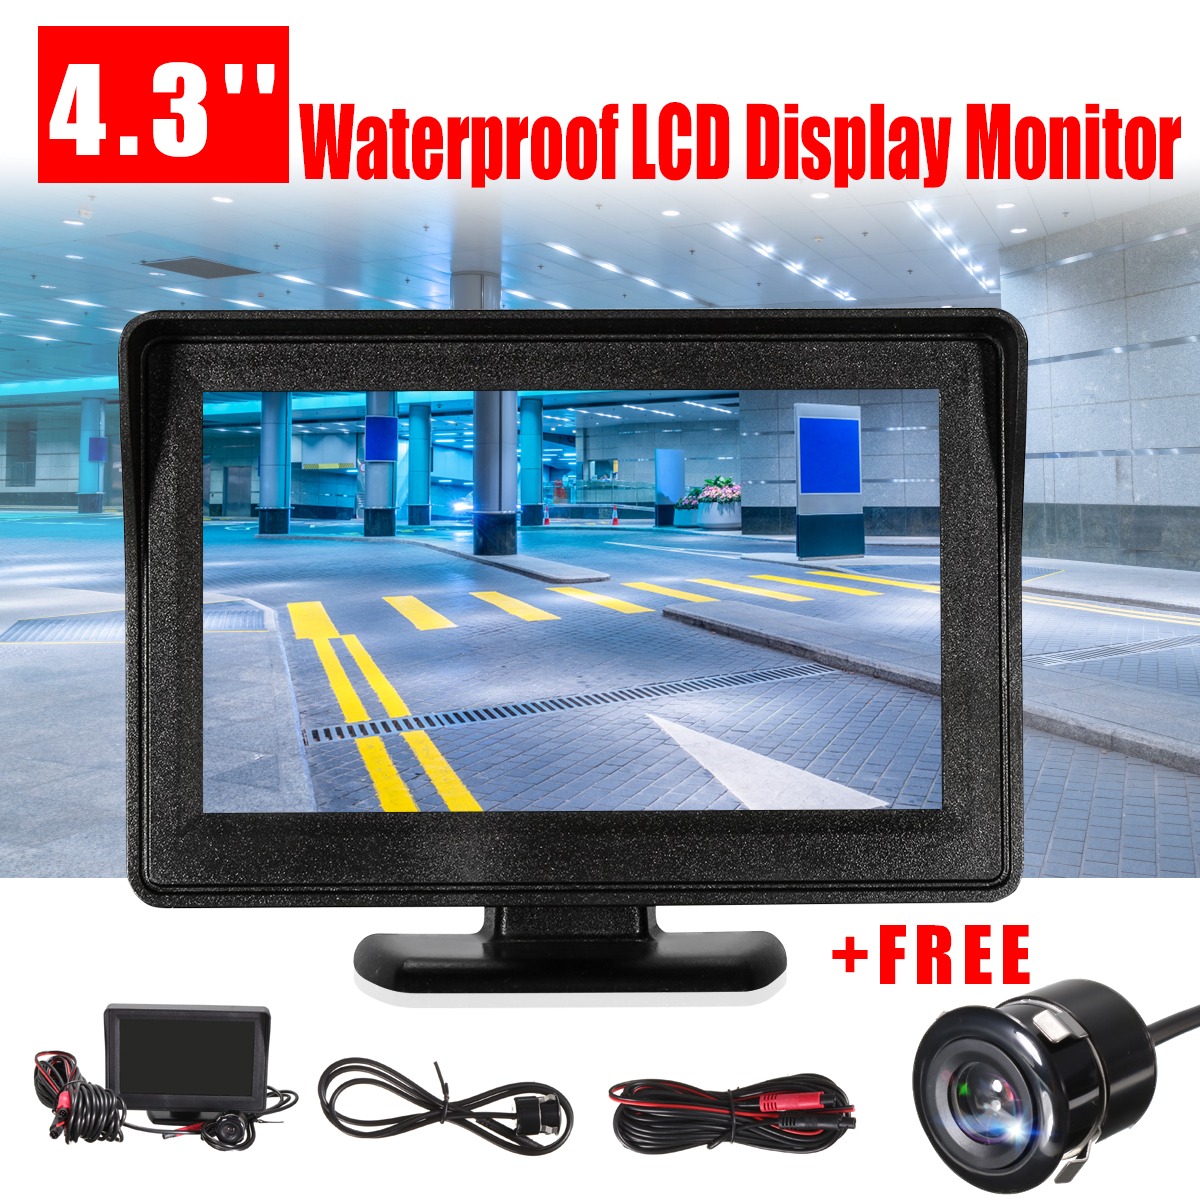 TFT LCD Car Monitor DVD Radar Detector Rearview Mirror Waterproof Rear View Backup Camera Parking Reverse Sensor System Assistan wireless car rear view kit 4 3 tft lcd vehicle screen monitor 170 wide degree mini reverse backup camera parking sensor 4 radar